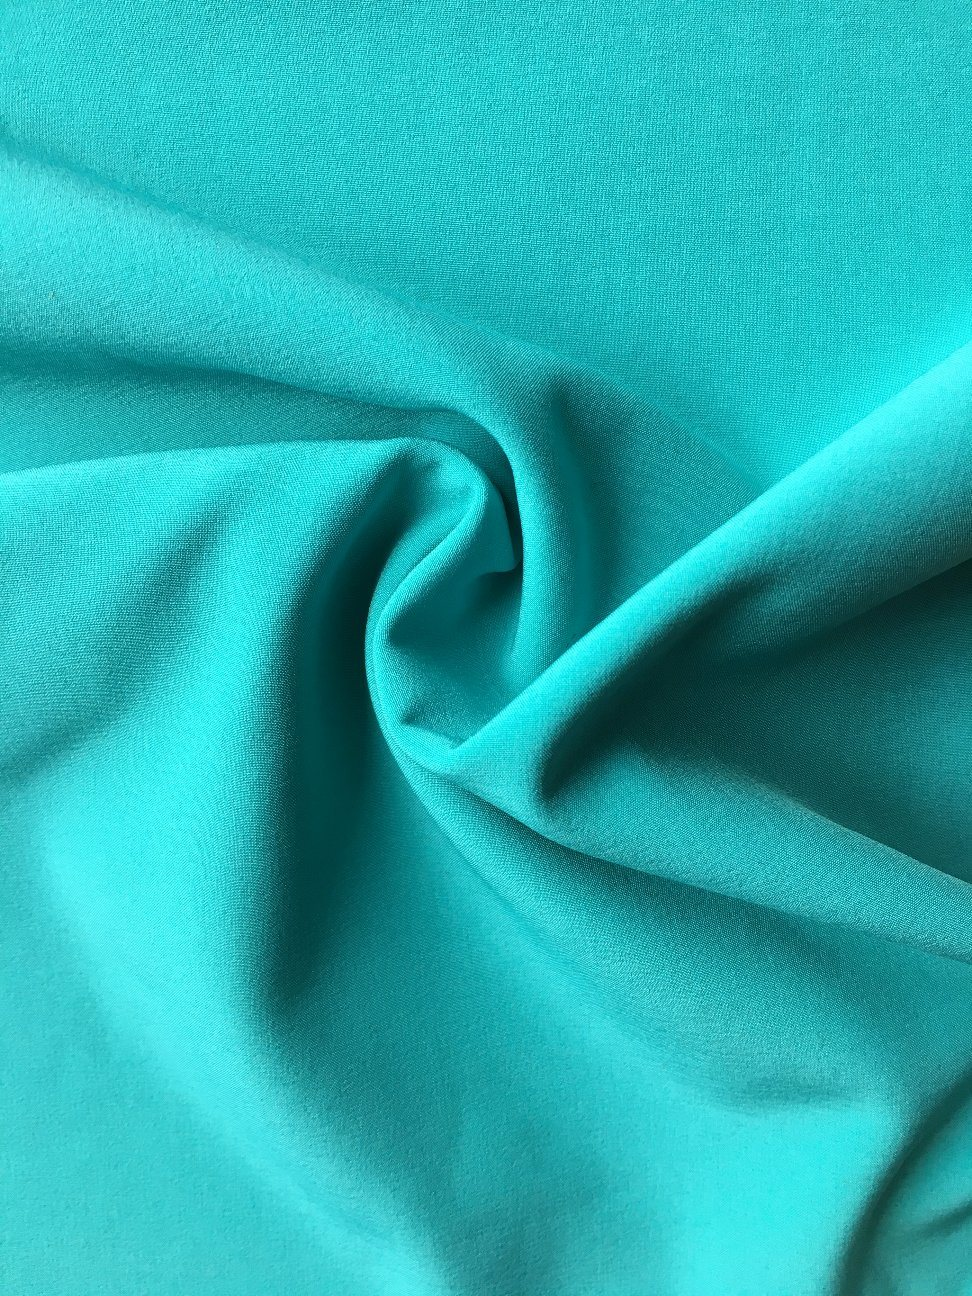 100% Polyester 4-Way Stretch Waterproof Fabric Laminated Polar Fleece Softshell Fabric